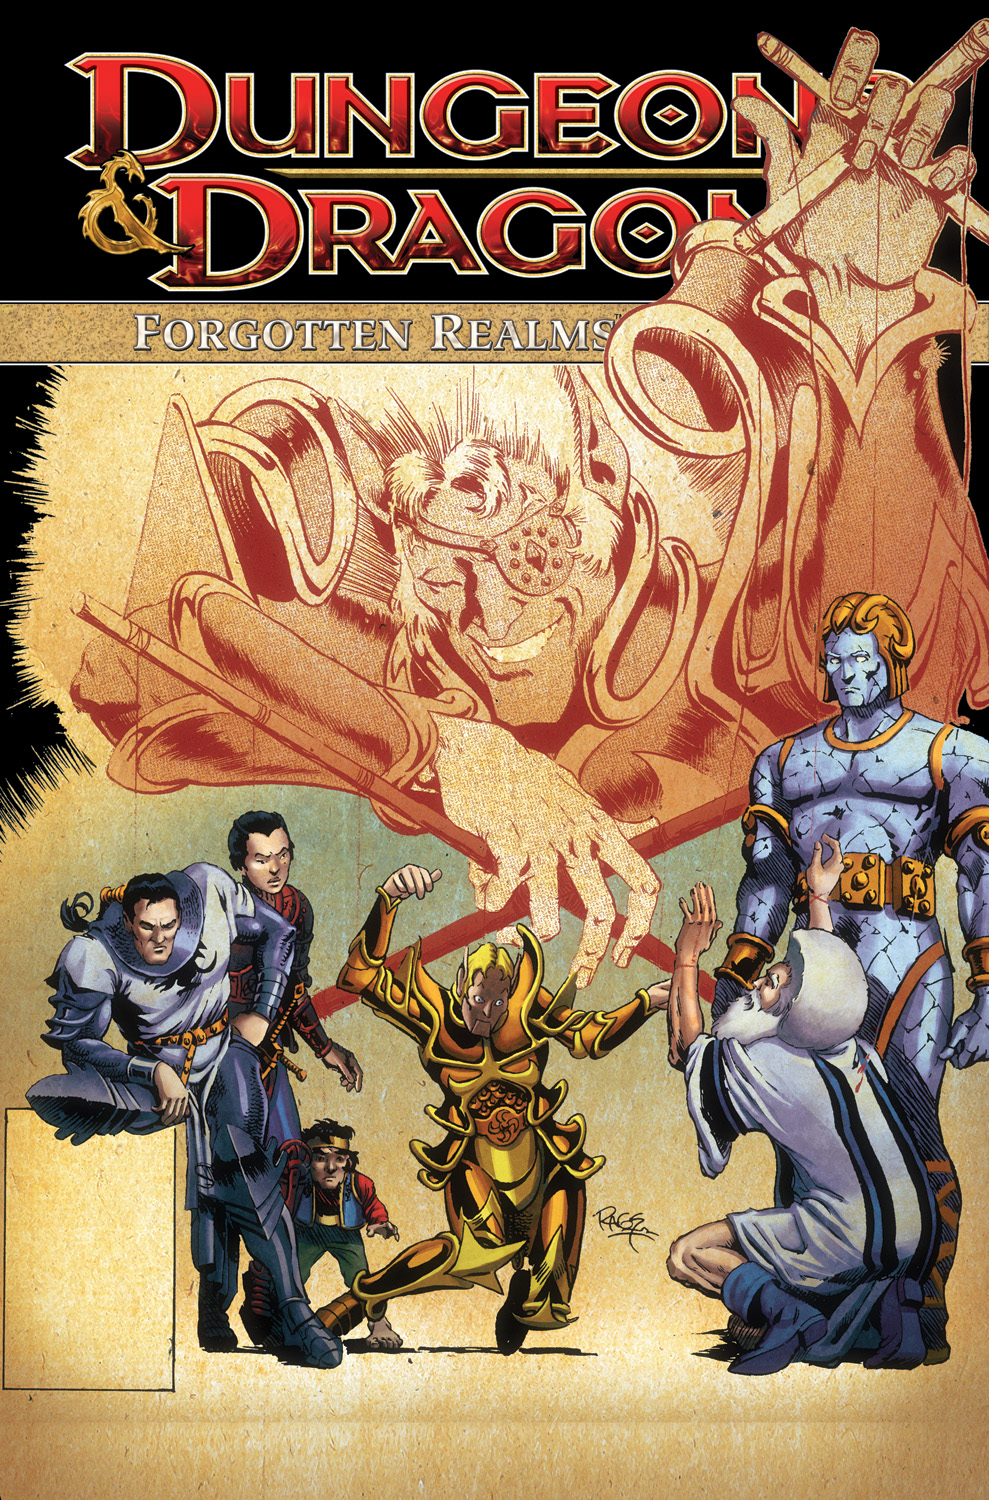 Dungeons & Dragons: Forgotten Realms Vol 3